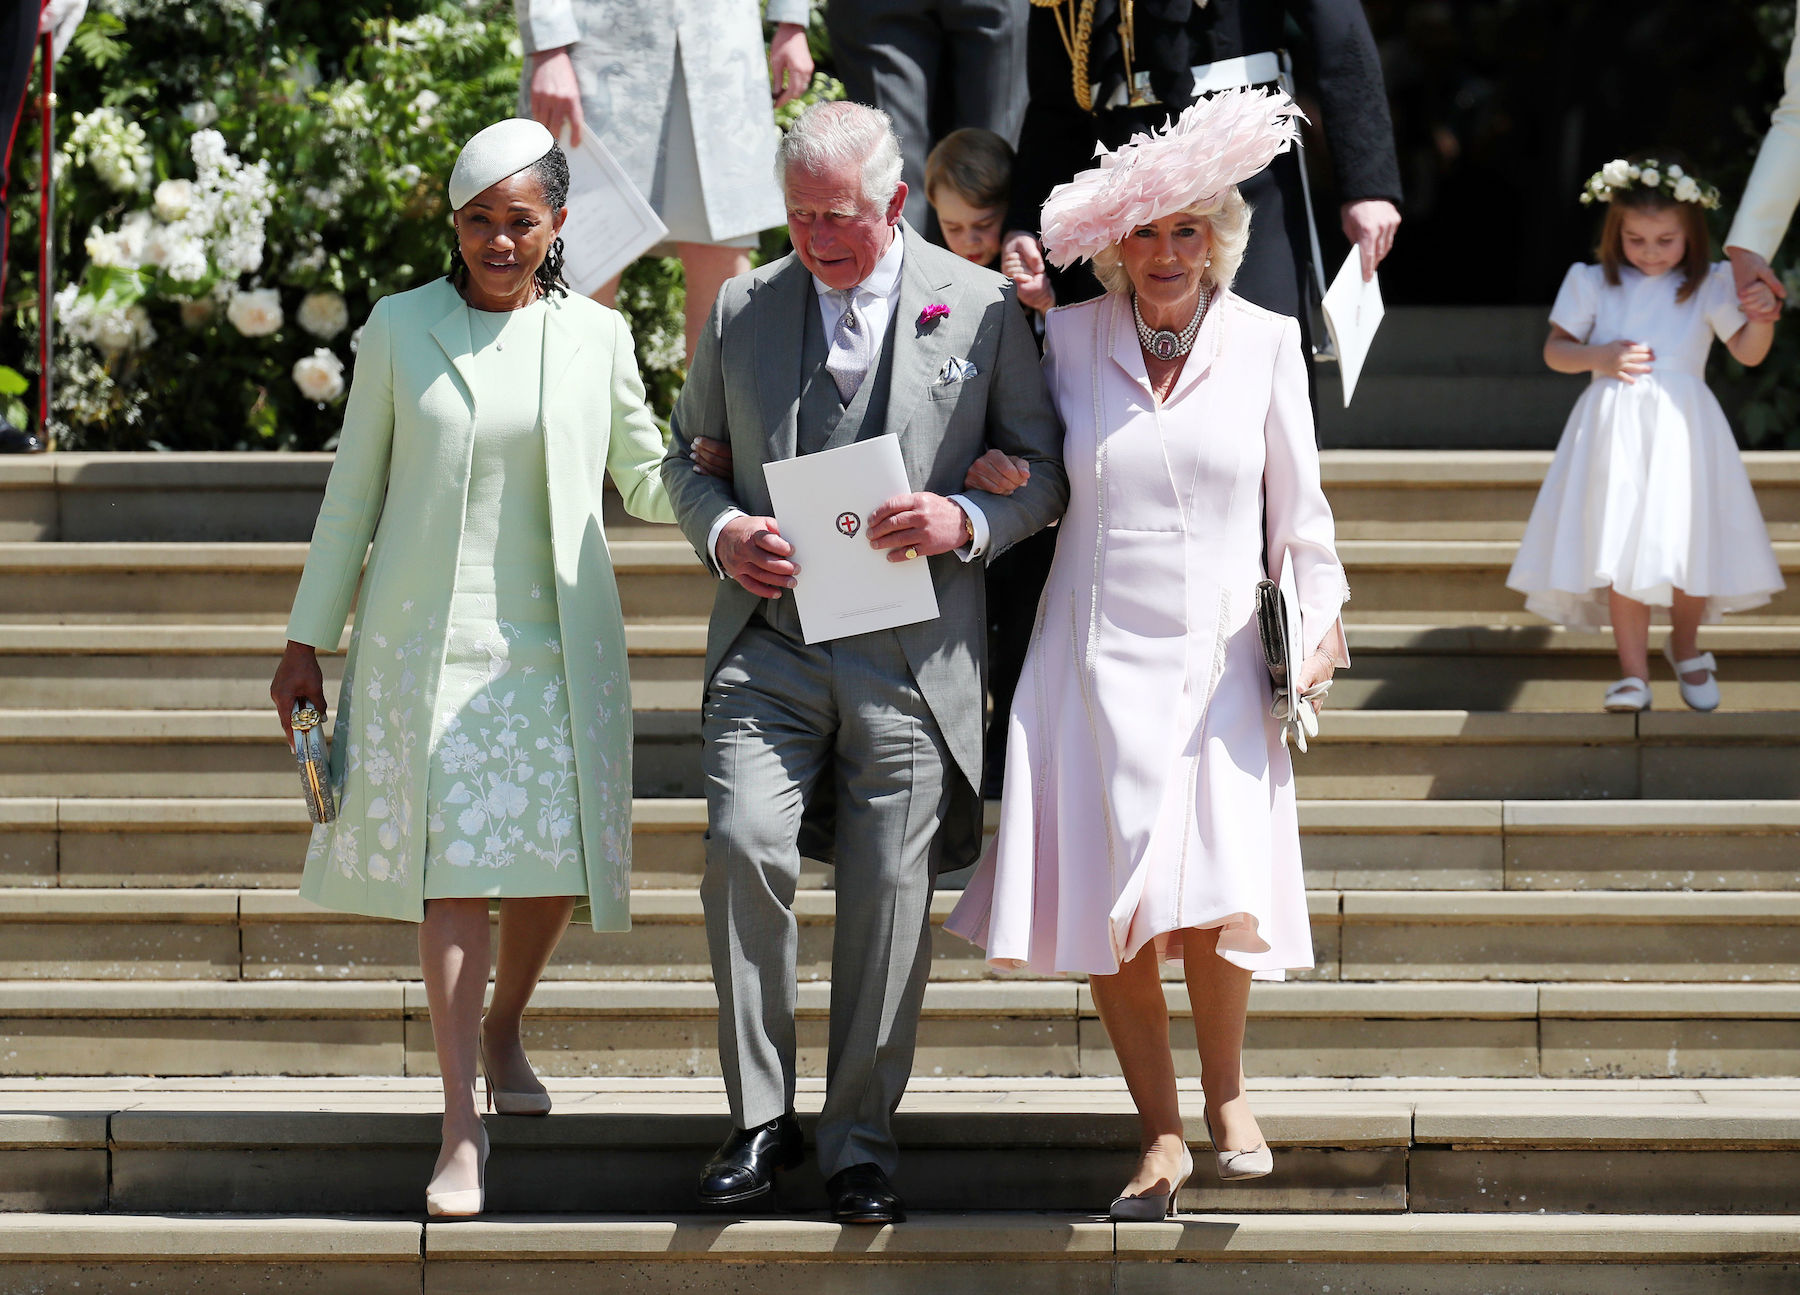 Prince Charles and Doria Ragland at royal wedding